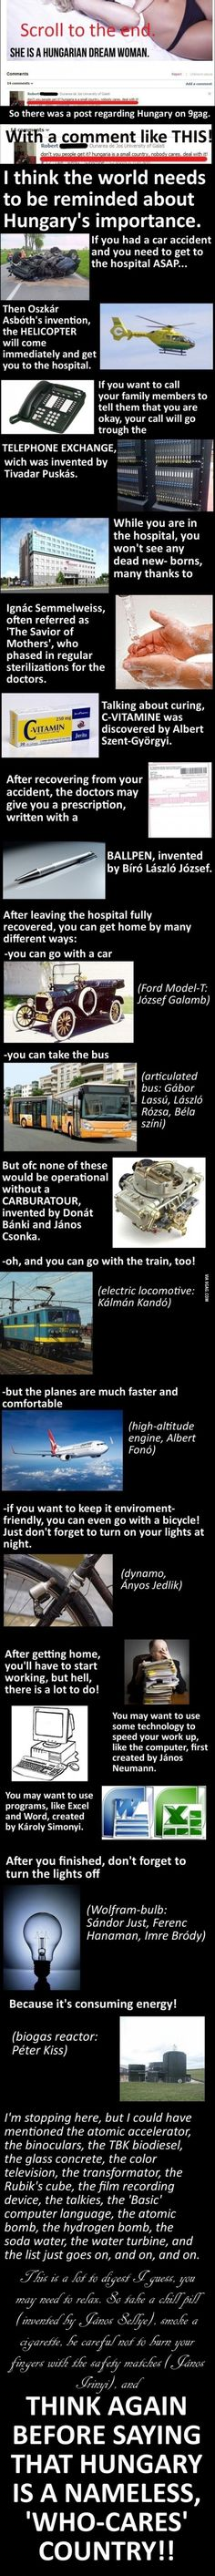 Some Hungarian Inventions Please read it!!!